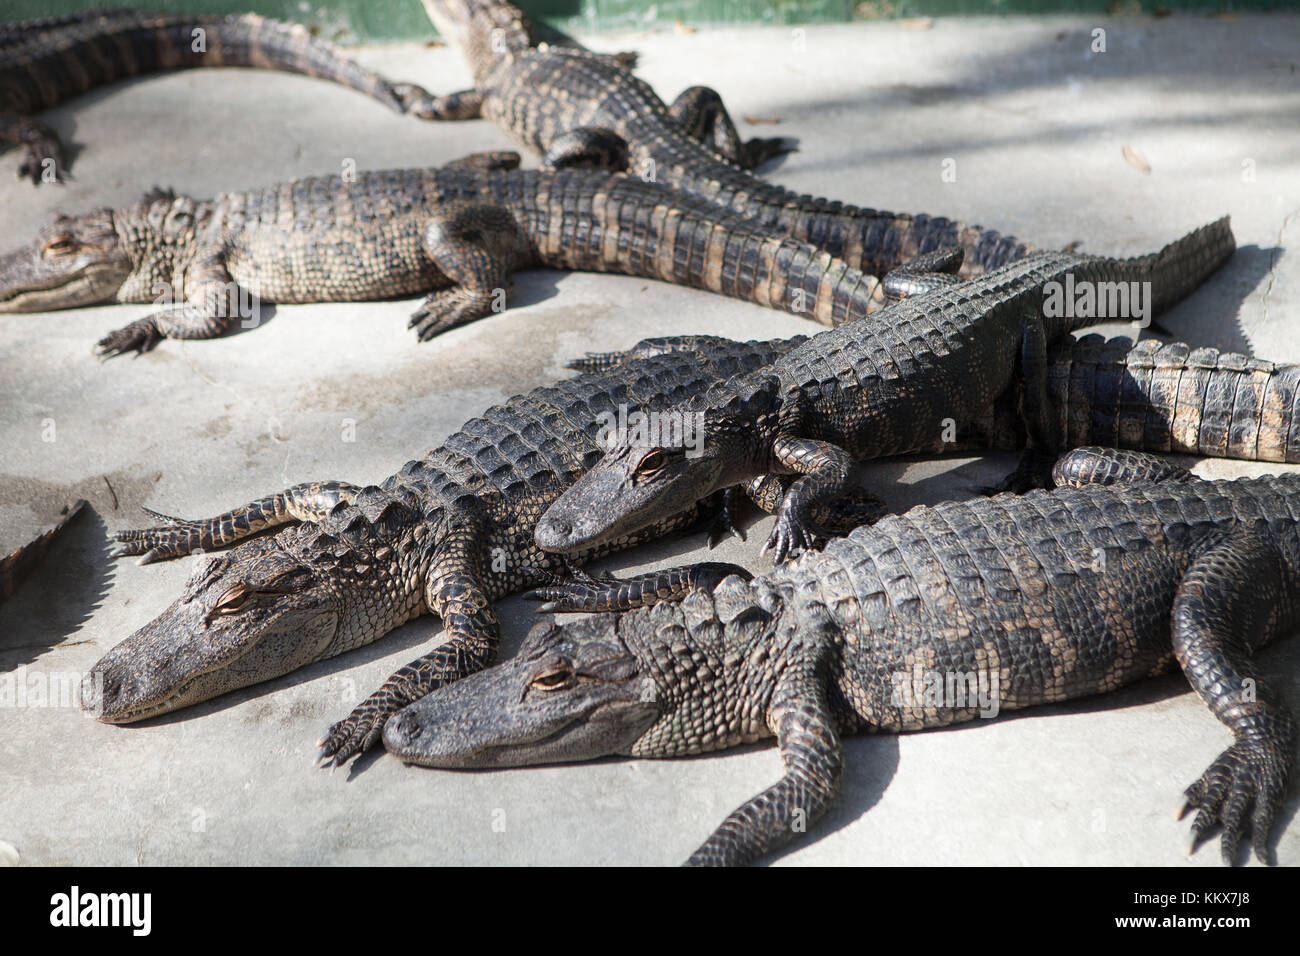 Young alligators in captivity at Jungle Adventures Wildlife Park, Christmas, Florida - Stock Image